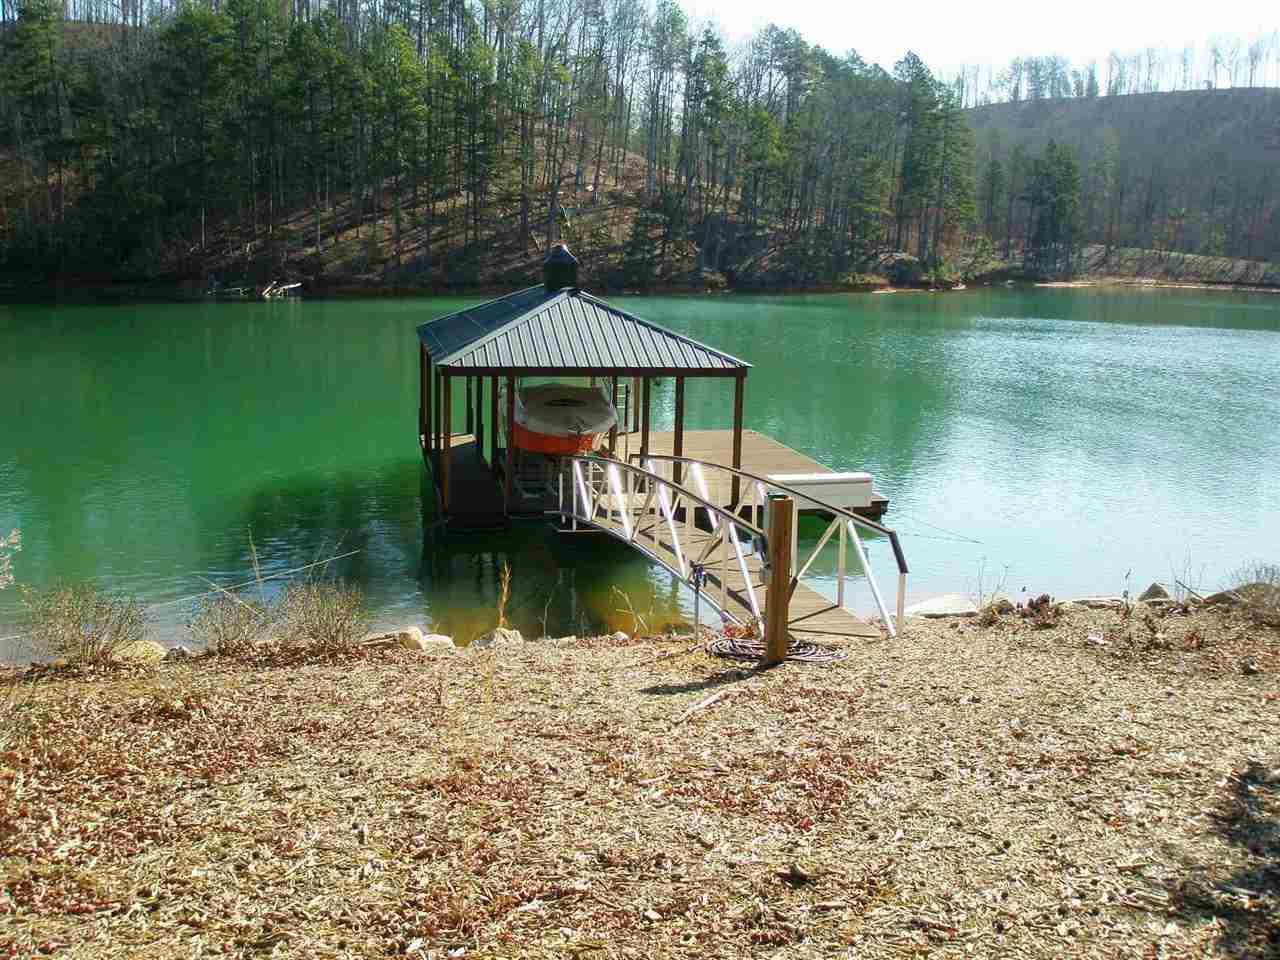 146 Bright Water Trail, Six Mile, SC 29682 (MLS #20162128) :: Les Walden Real Estate